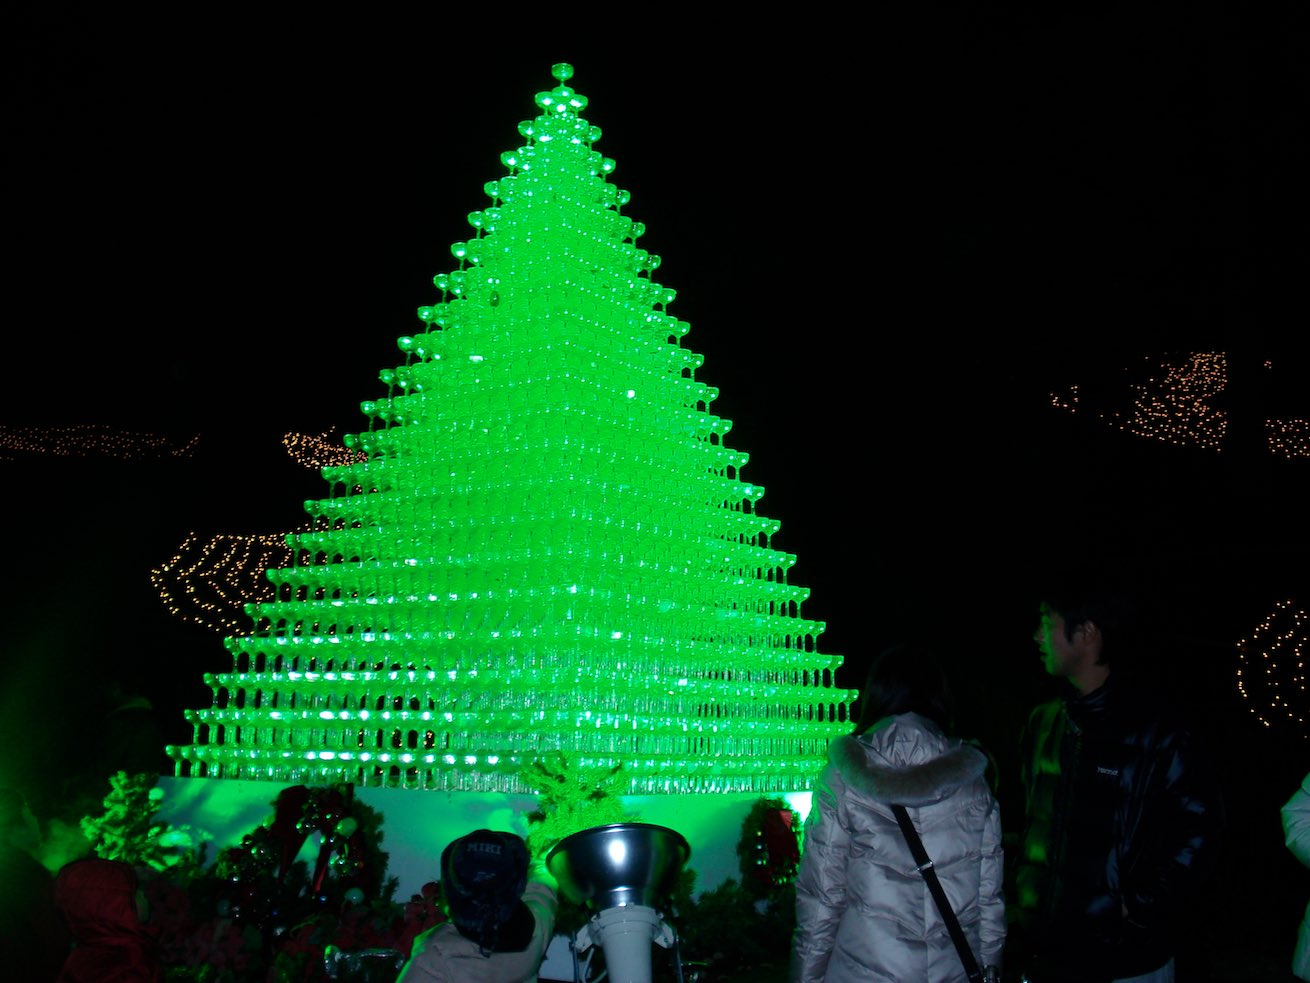 Bihoku Park Illumination 2006